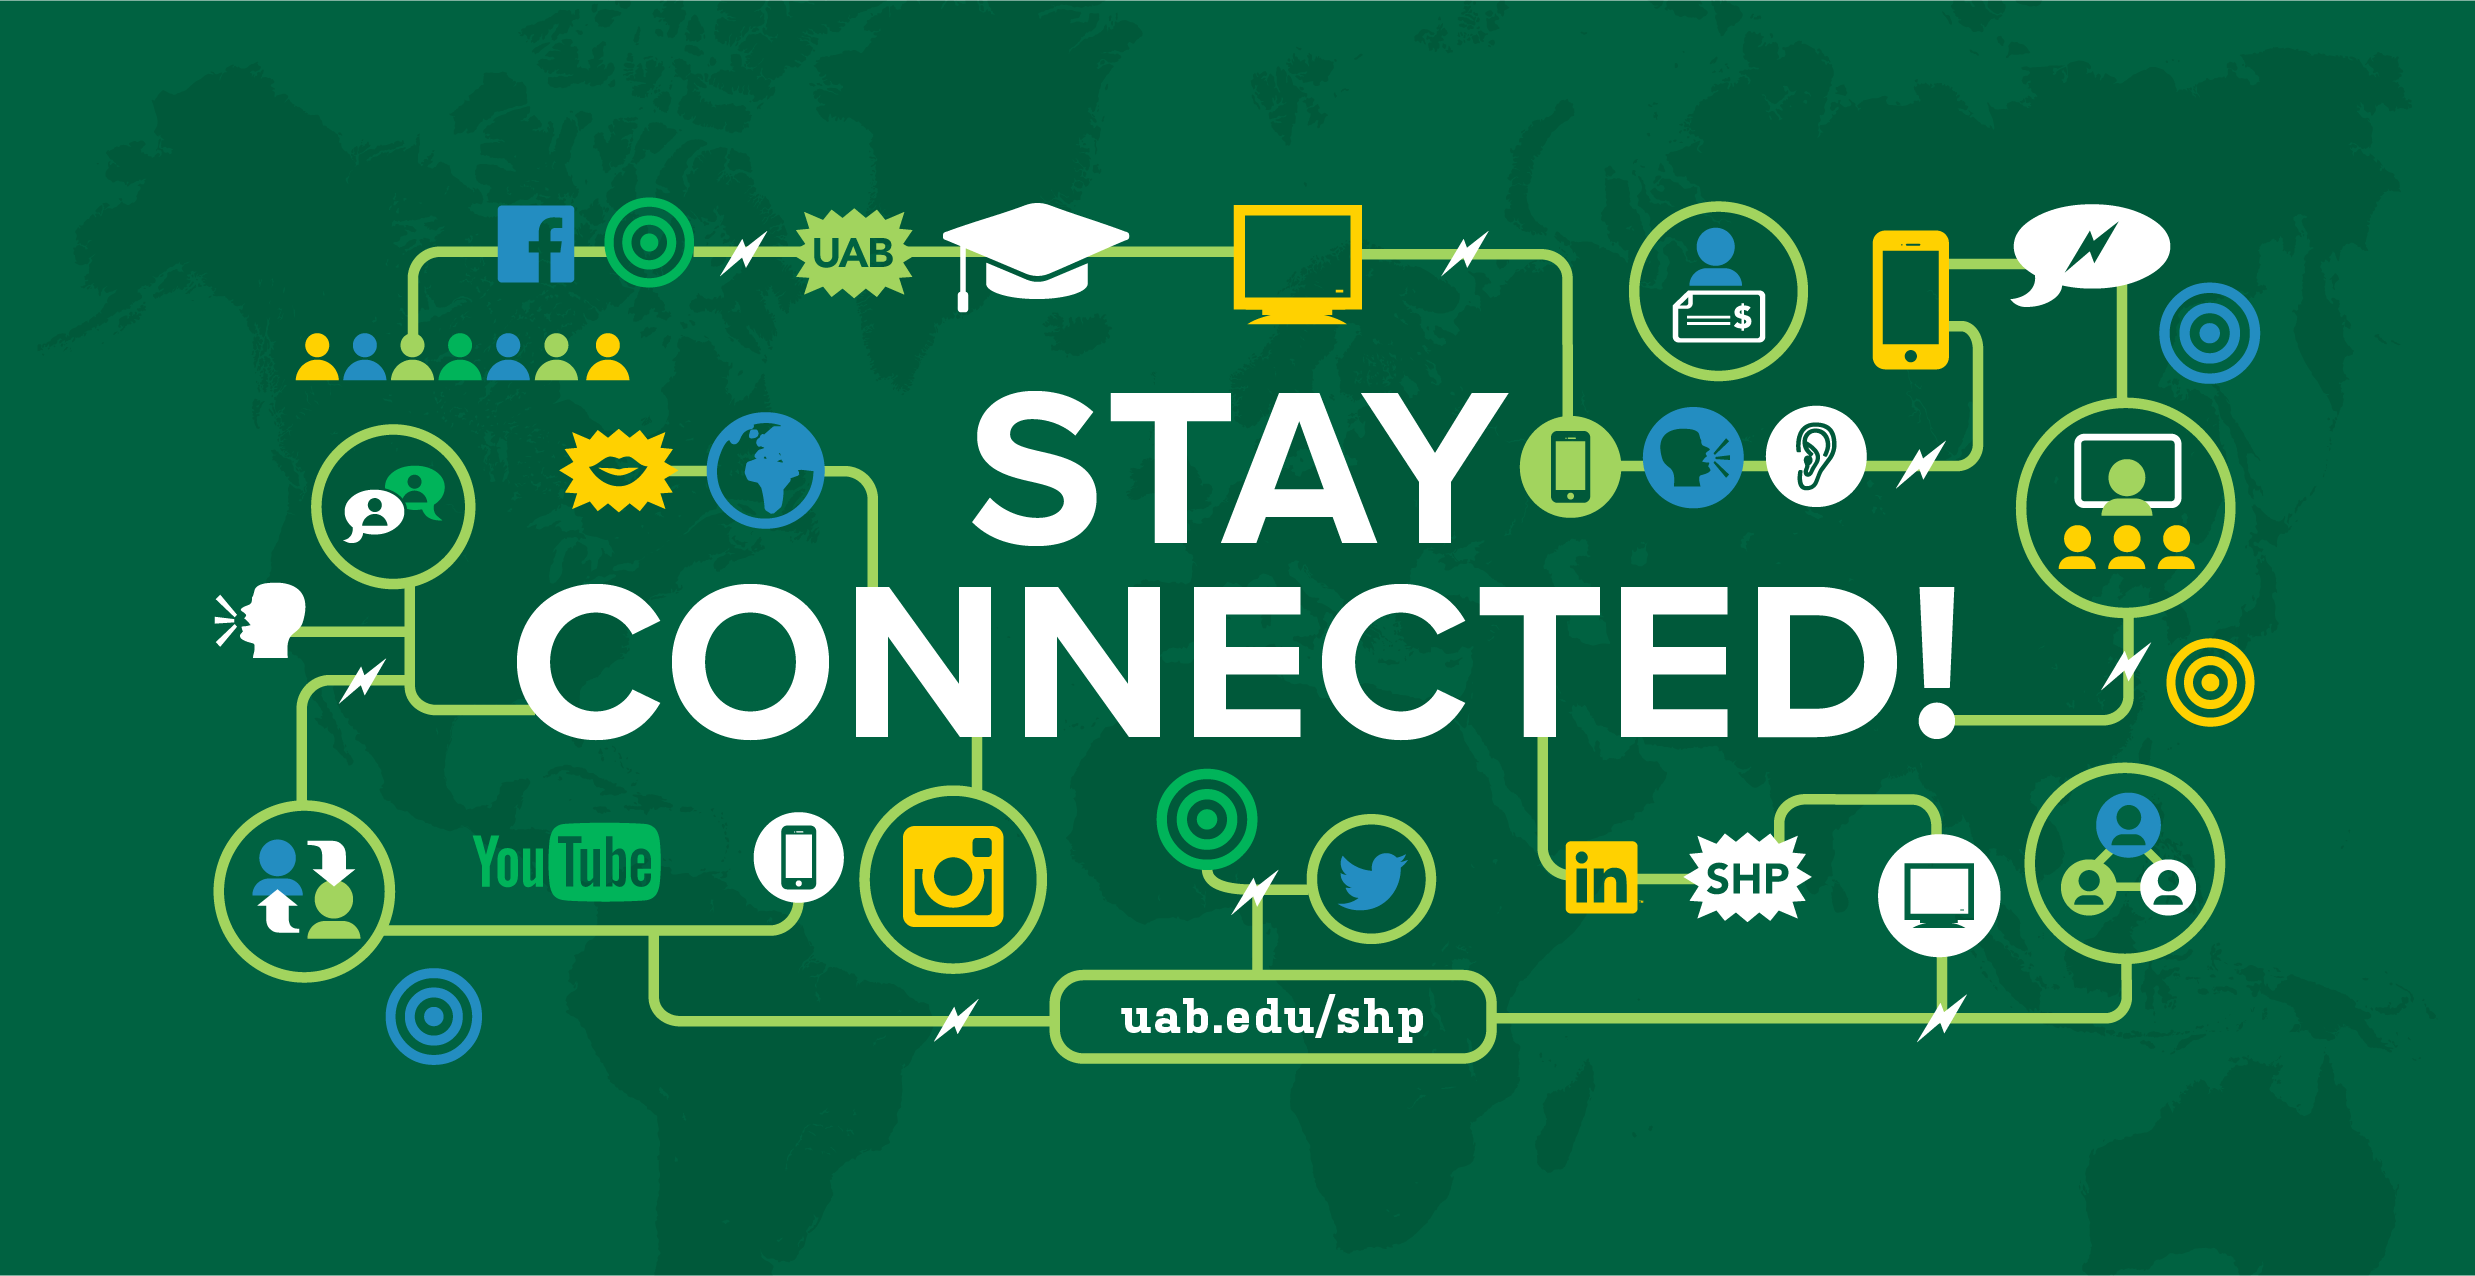 Stay Connected Graphic